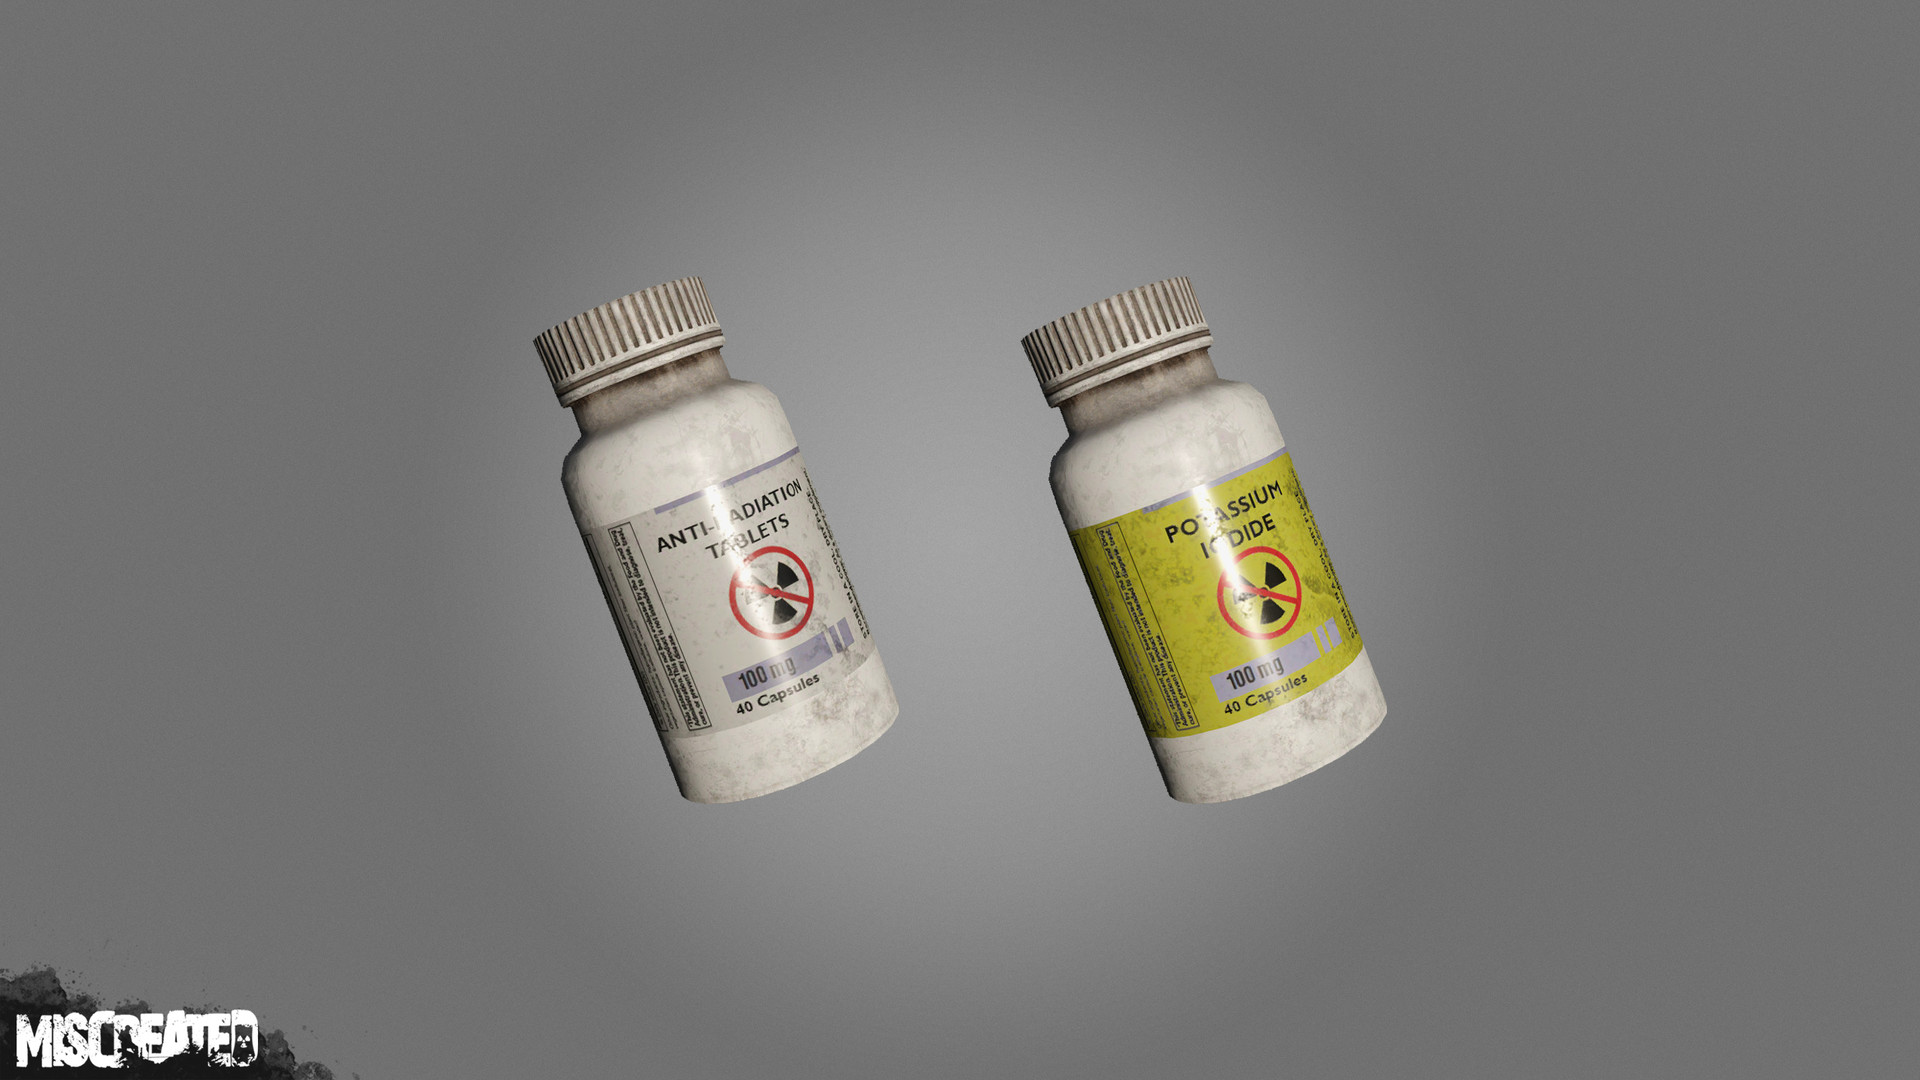 Anti-Radiation/ Potassium Iodide Pills to help protect players from irradiated areas